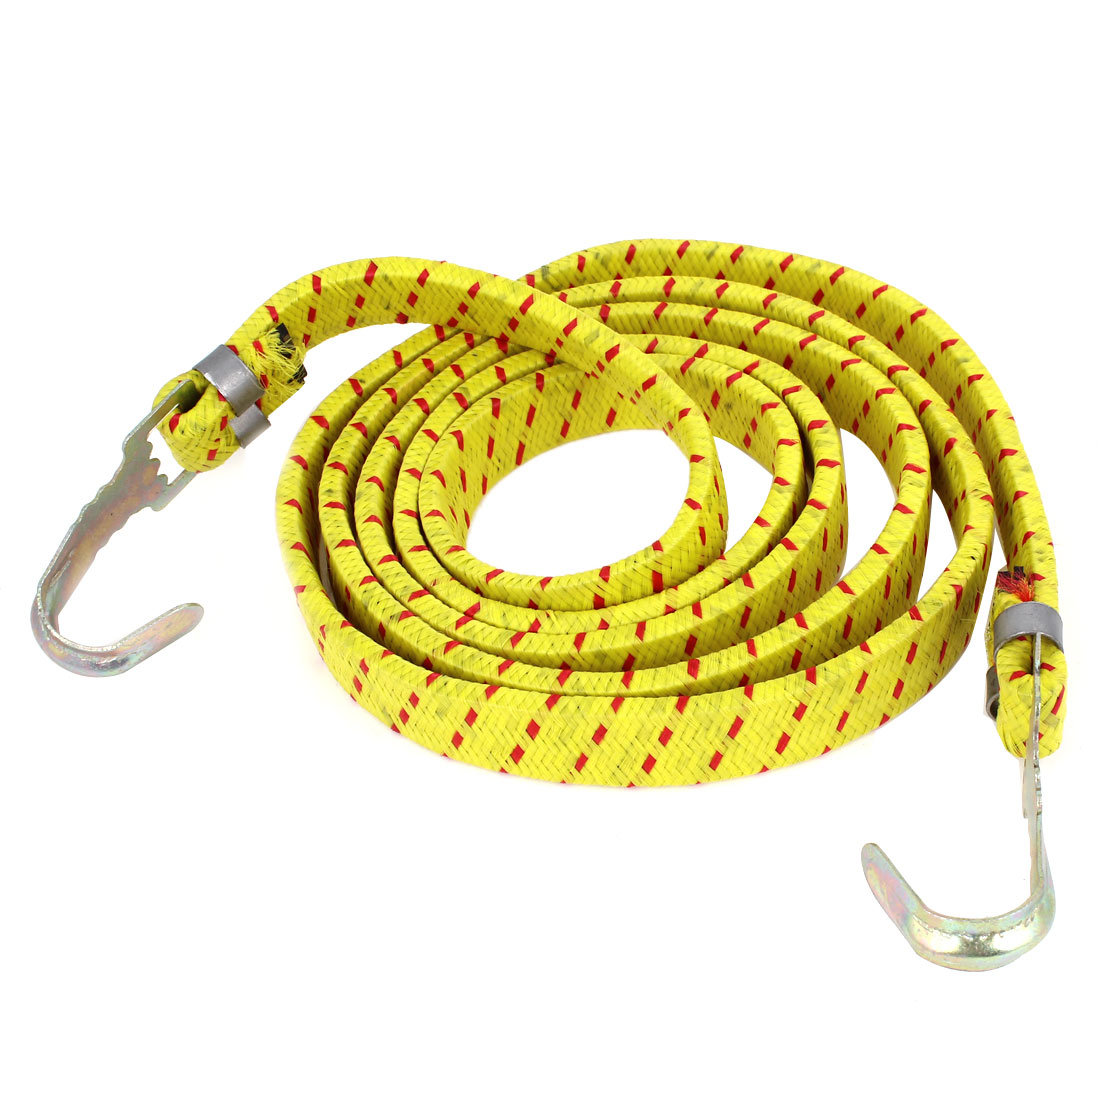 Bicycle Metal Hook Flat Stretchy Luggage Cord Rope Yellow Red 5ft 153cm